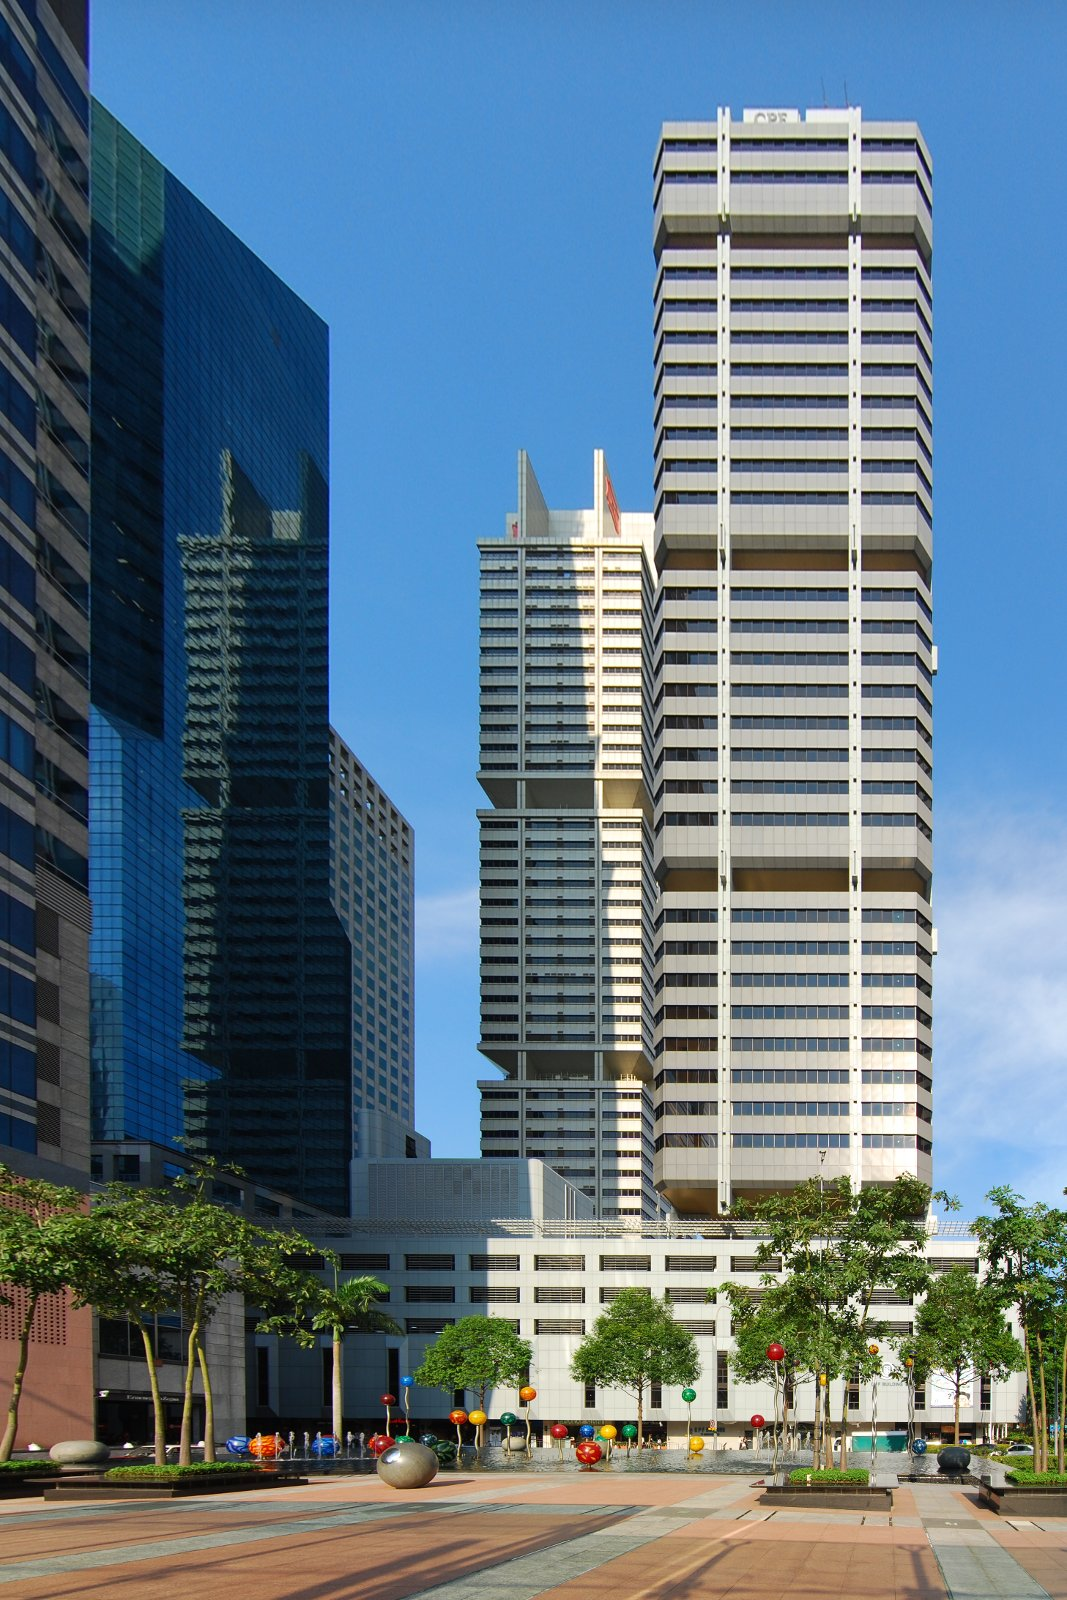 The 29-storey CPF Building was completed in 1976.